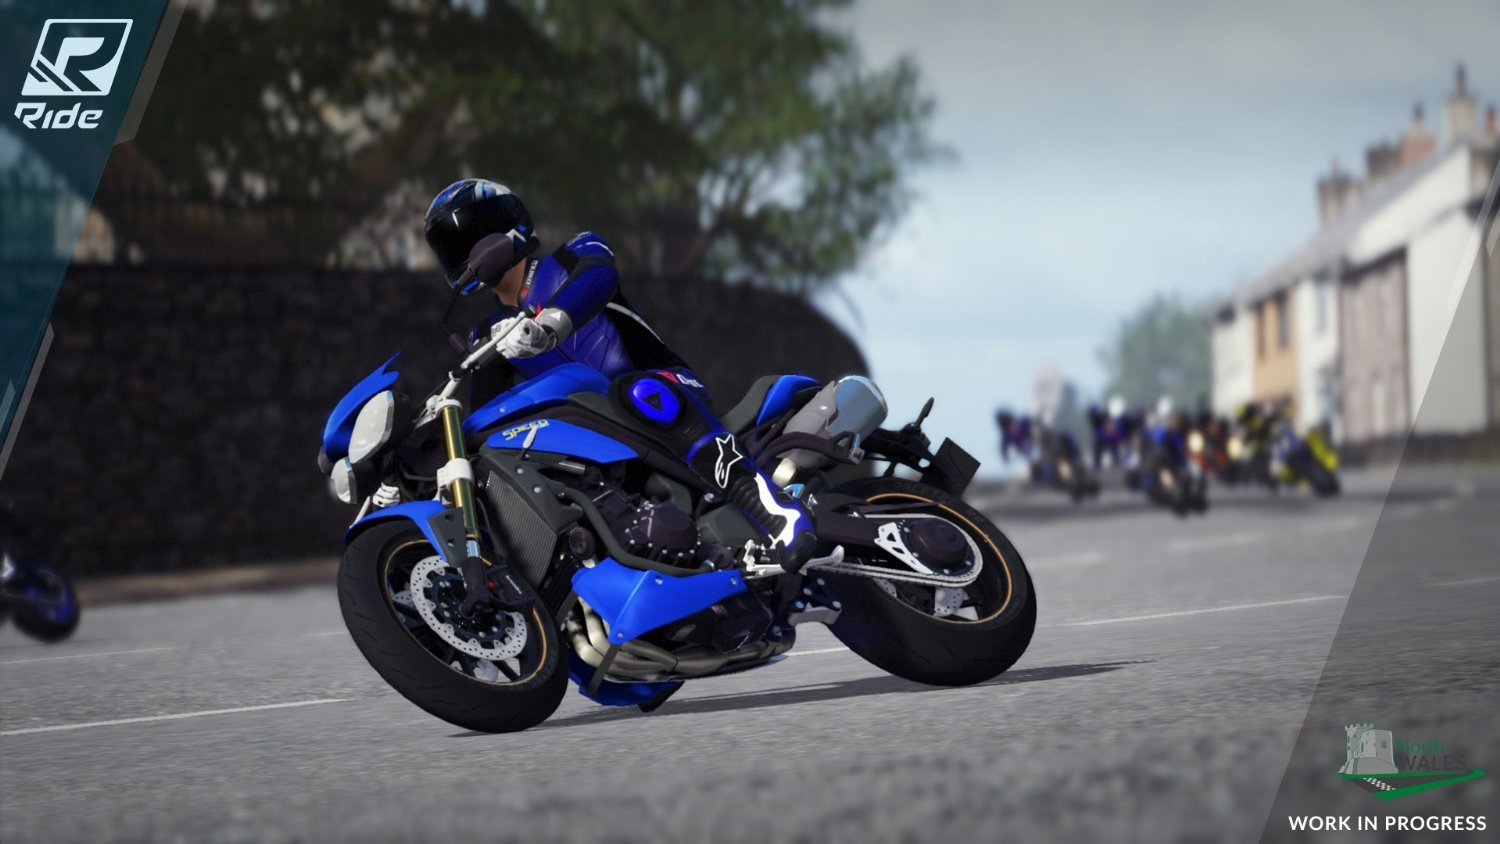 RIDE PS3 PlayStation 3 Game Profile News Reviews